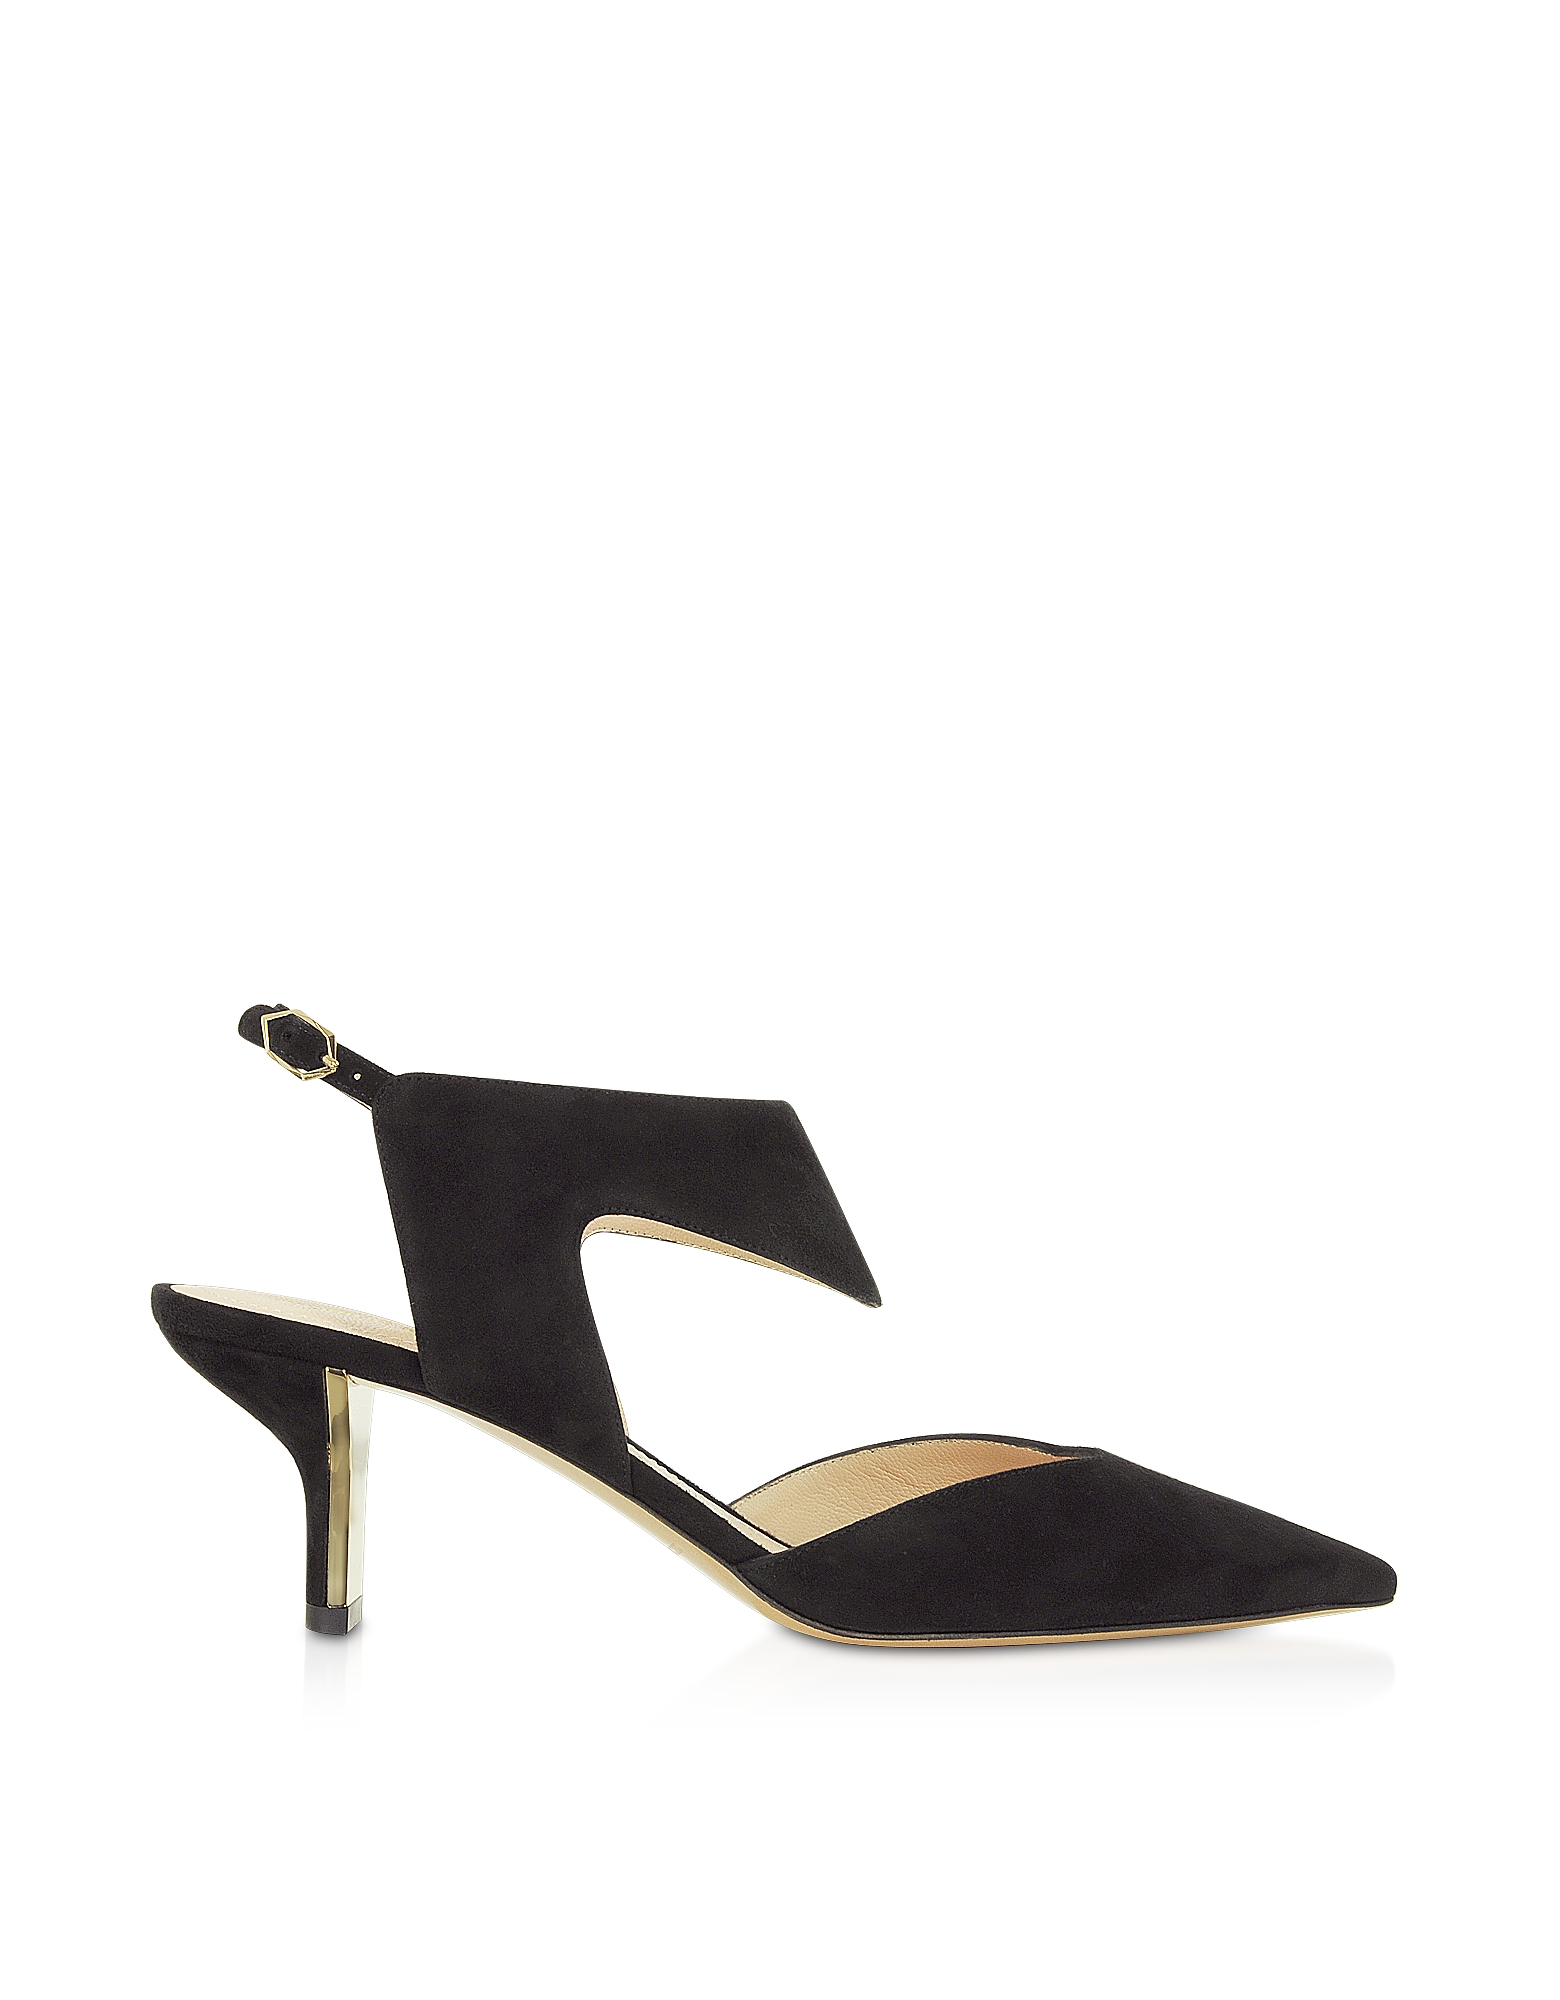 Nicholas Kirkwood Designer Shoes, Black Suede 60mm Leeloo Sling Pumps